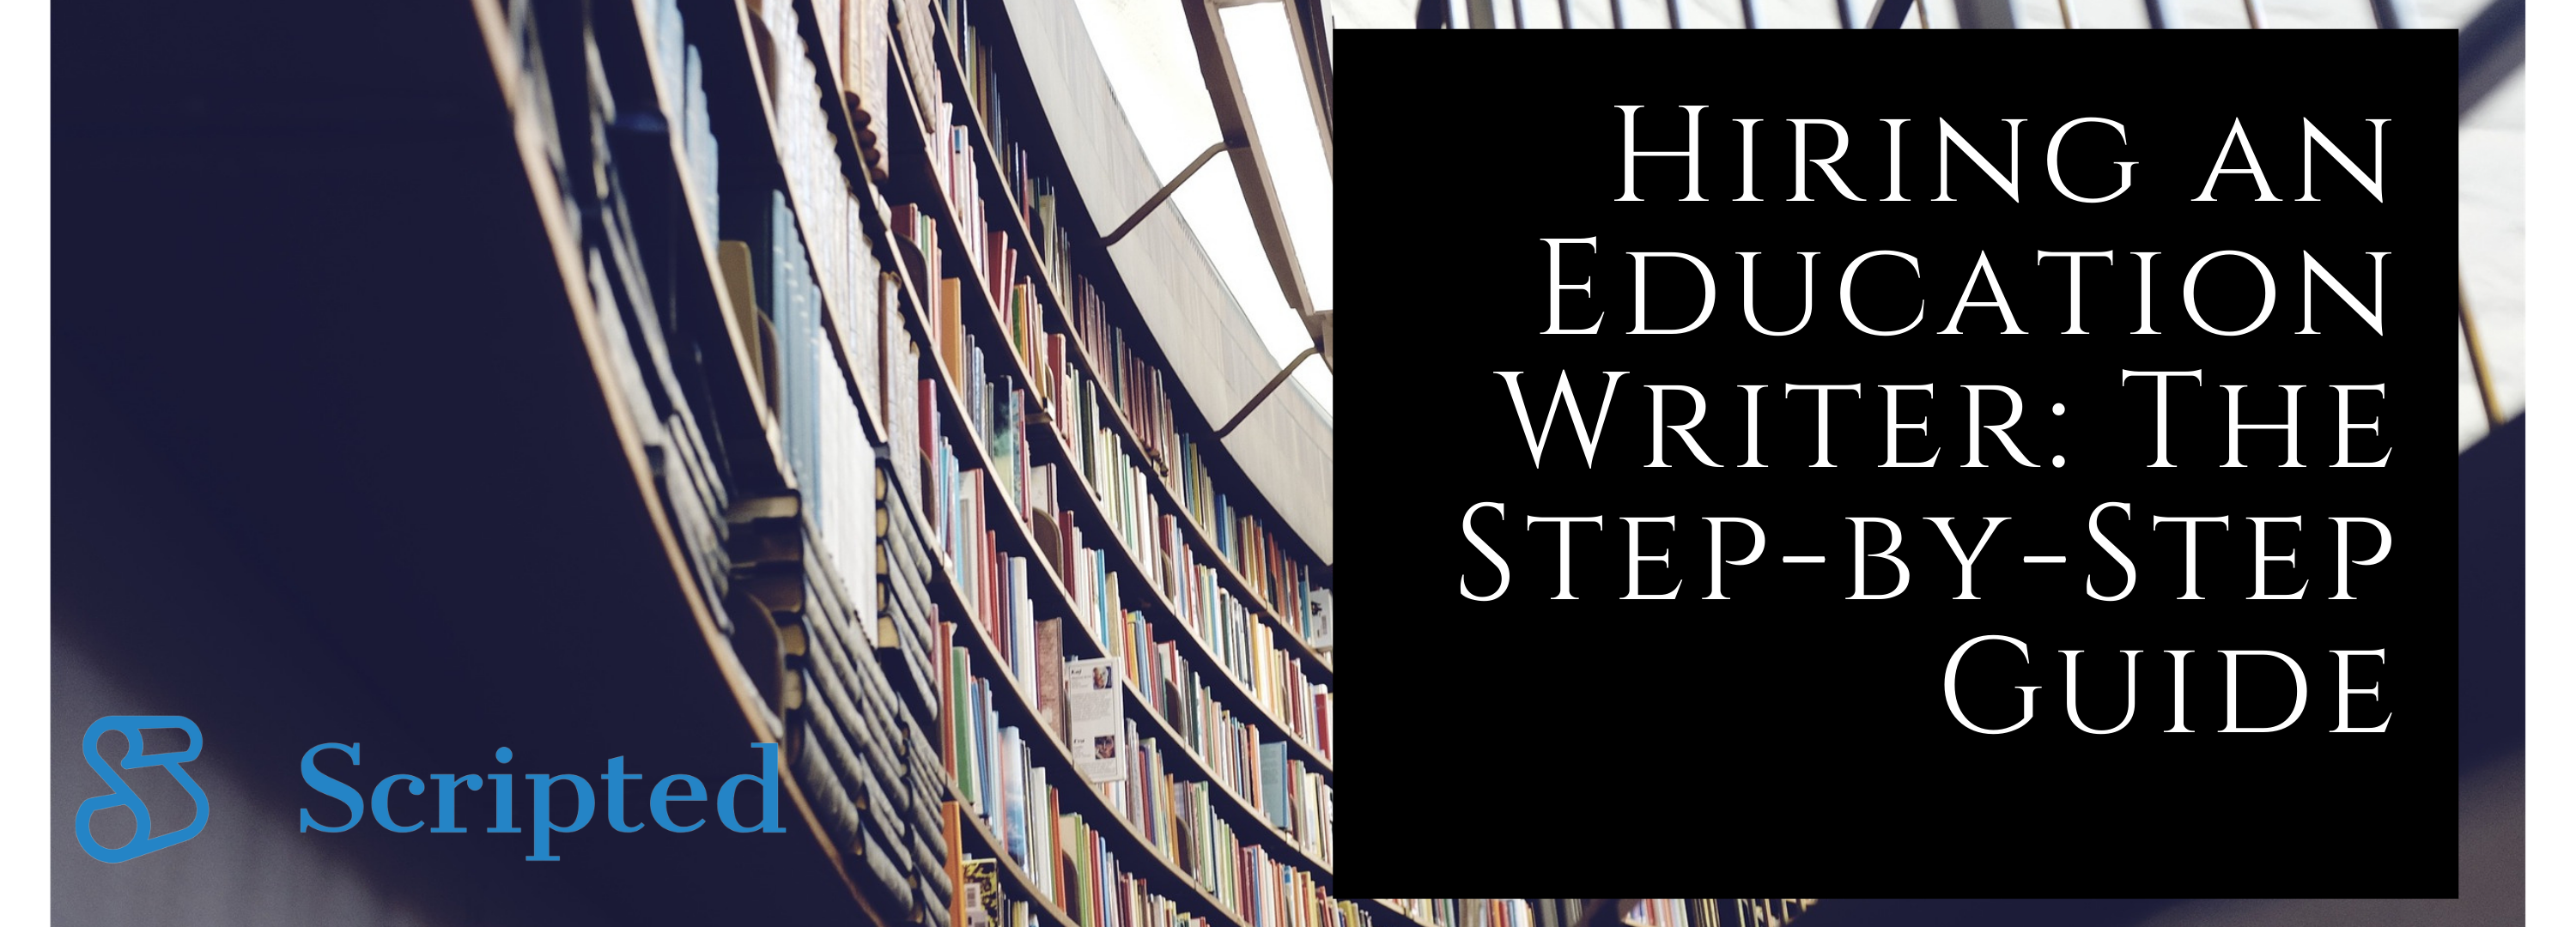 Hiring an Education Writer: The Step-by-Step Guide